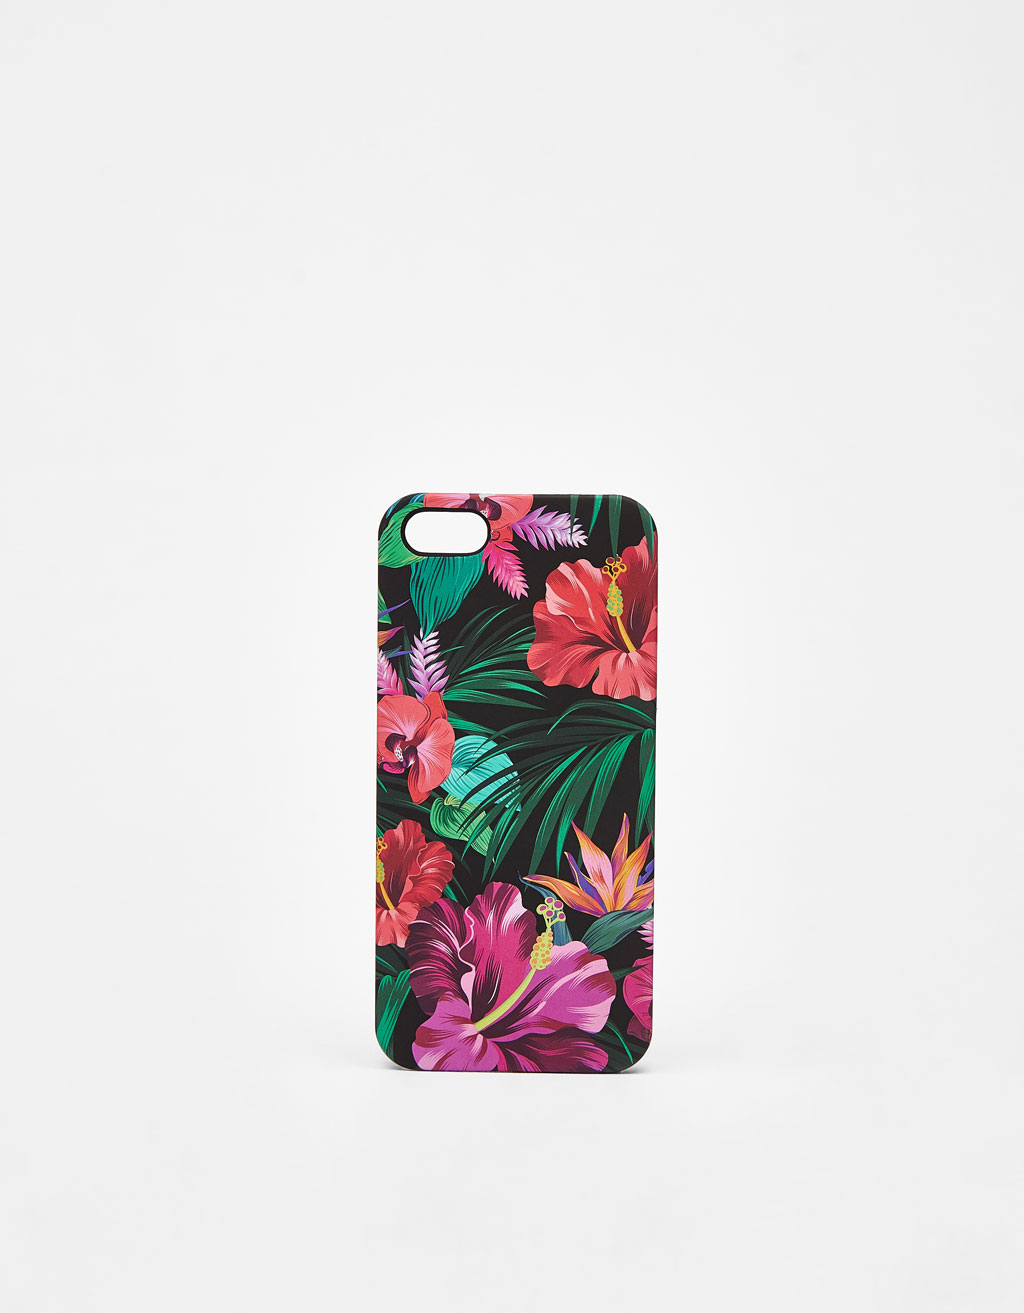 Carcasa de flores tropicales iPhone 5/5s